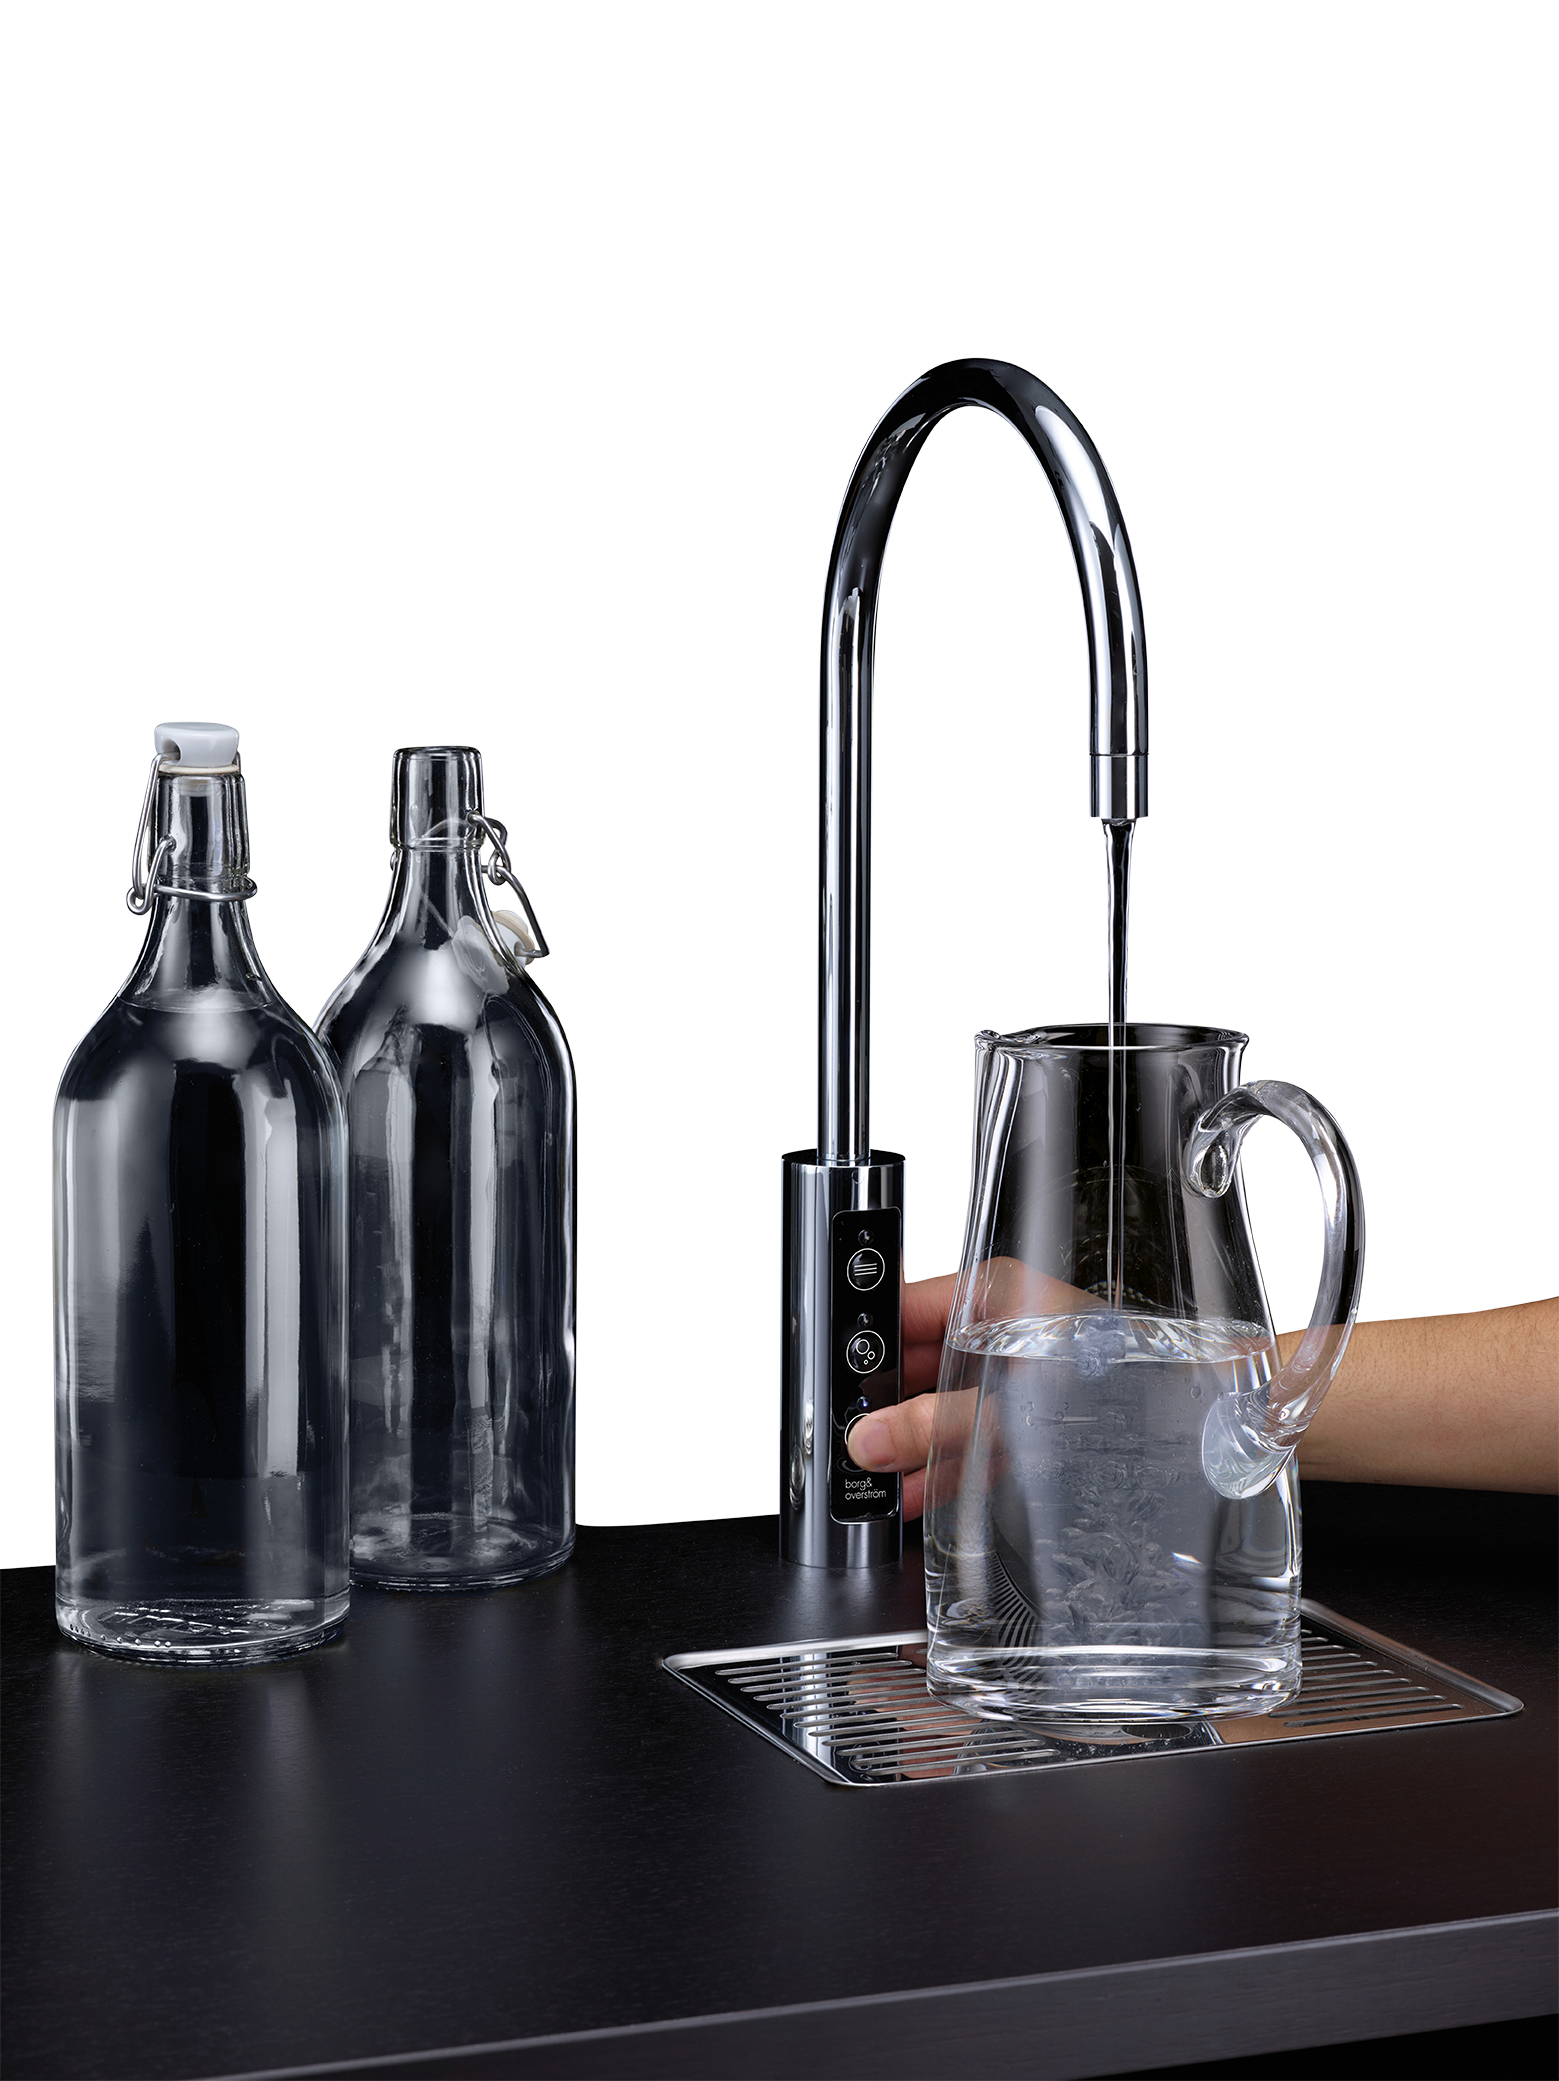 U1 Borg & Overstrom Tap dispense jug and bottles (Transparent) Low Resolution.png